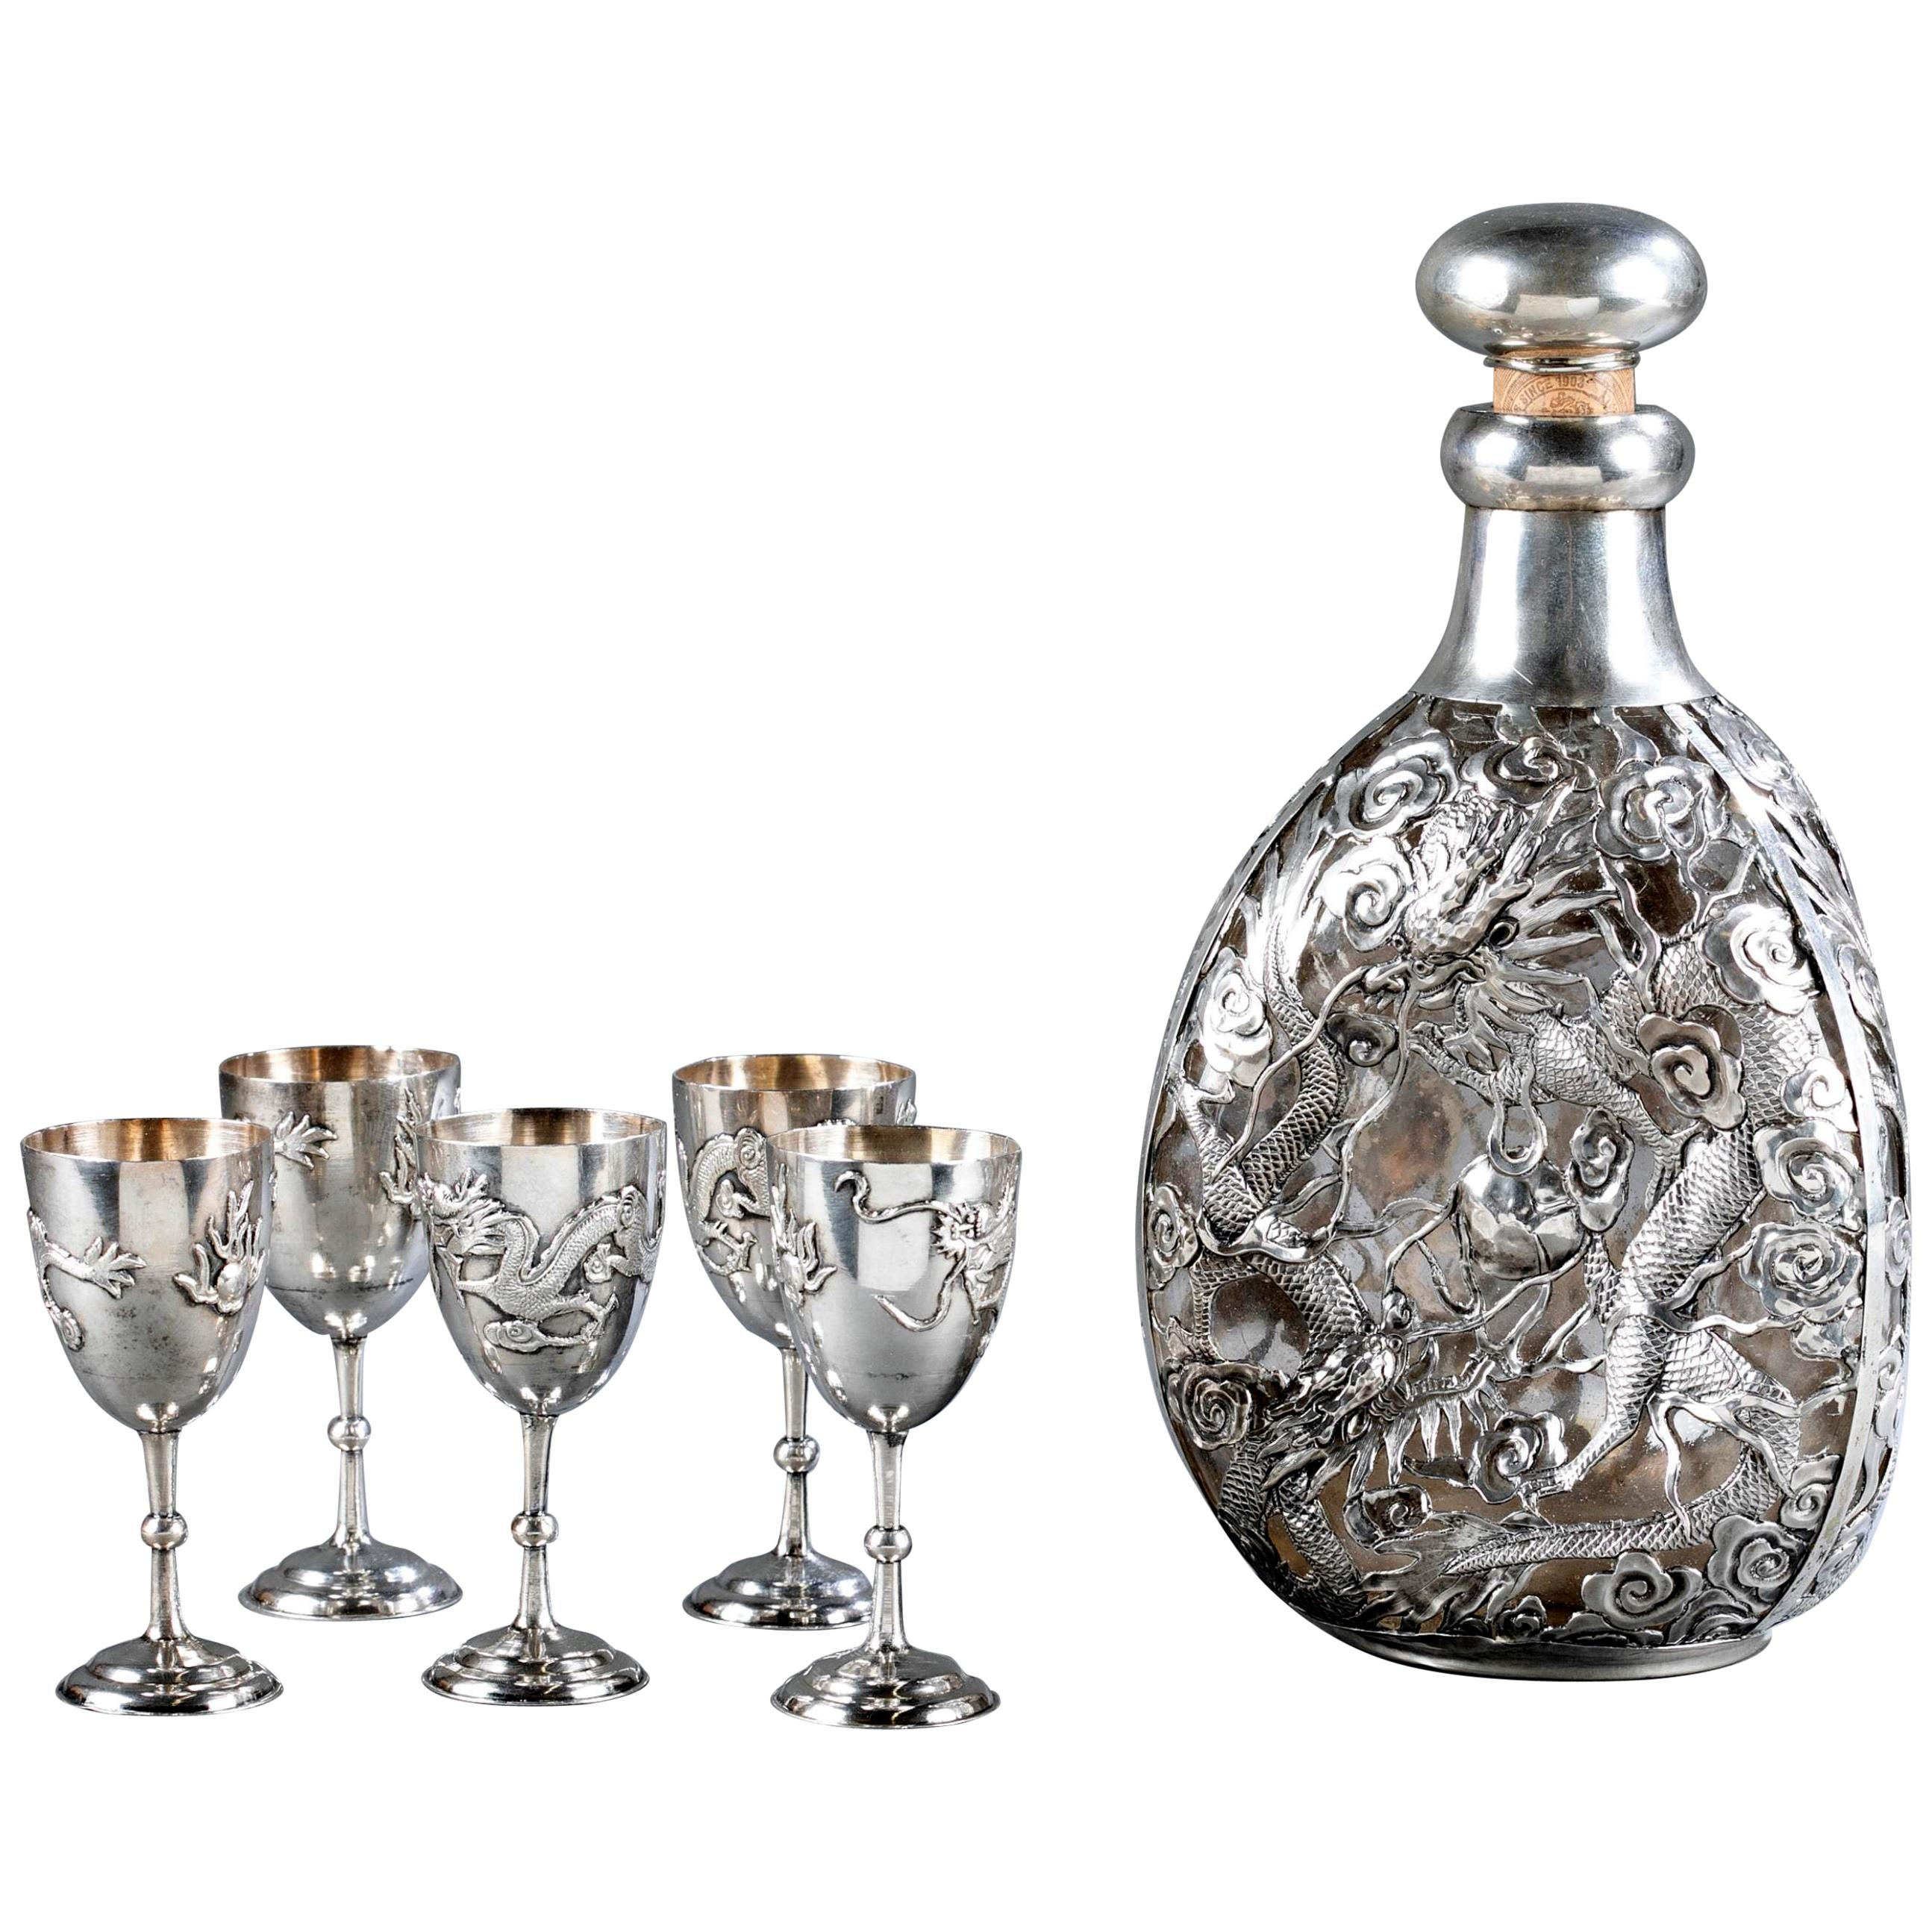 Set of Chinese Export Silver Overlay Bottle with Five Cordials Tianjin Wuhua